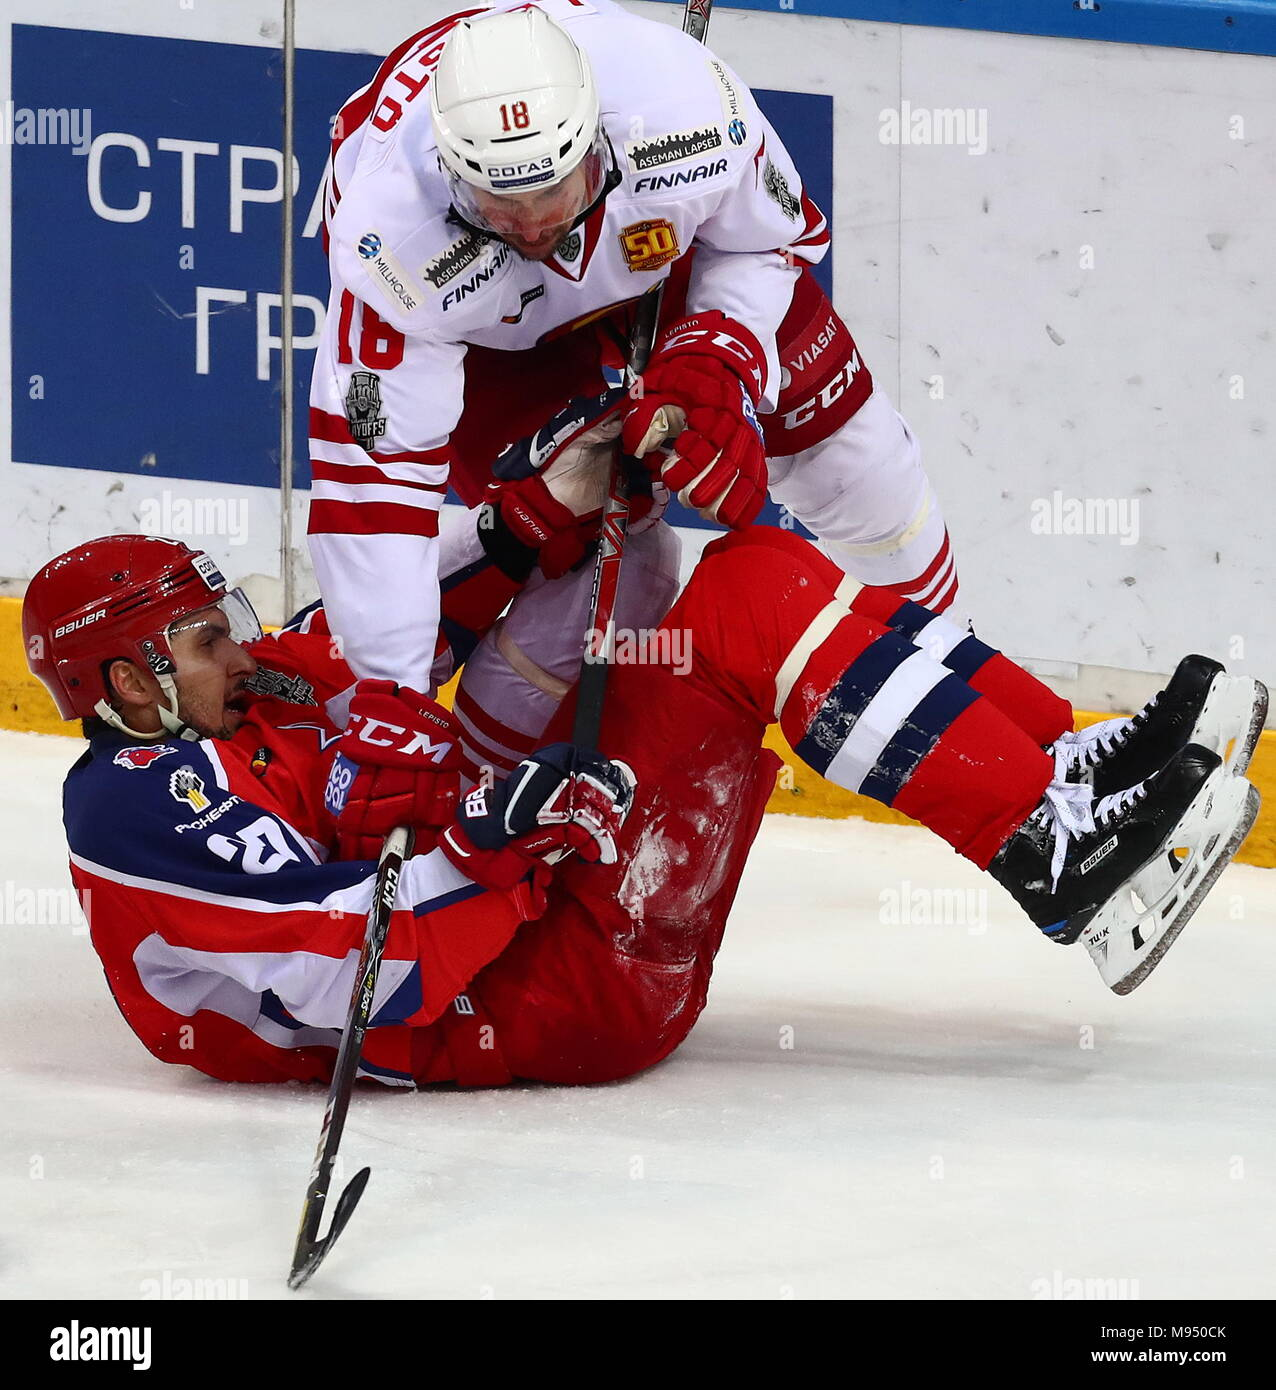 Moscow, Russia. 22nd Mar, 2018. MOSCOW, RUSSIA - MARCH 22, 2018: CSKA Moscow's Kirill Petrov (L) and Jokerit Helsinki's Sami Lepisto in their 2017/18 KHL Western Conference semifinal playoff ice hockey match at CSKA Ice Palace. Stanislav Krasilnikov/TASS Credit: ITAR-TASS News Agency/Alamy Live News - Stock Image